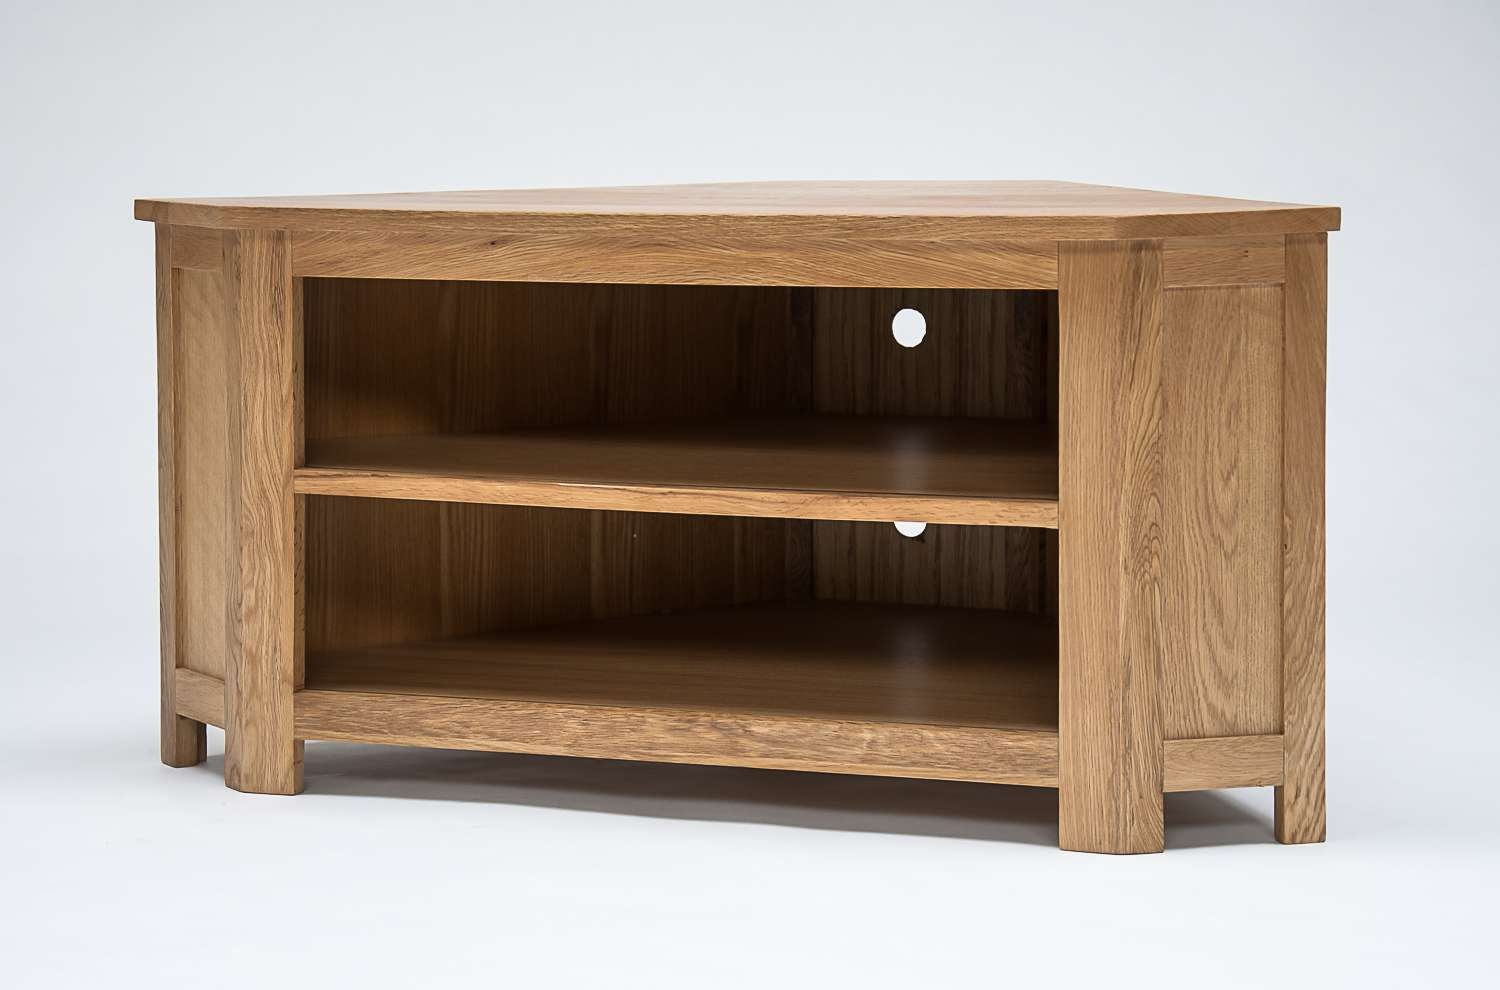 Lansdown Oak Low Corner Tv Cabinet | Oak Furniture Solutions In Oak Corner Tv Cabinets (View 5 of 20)